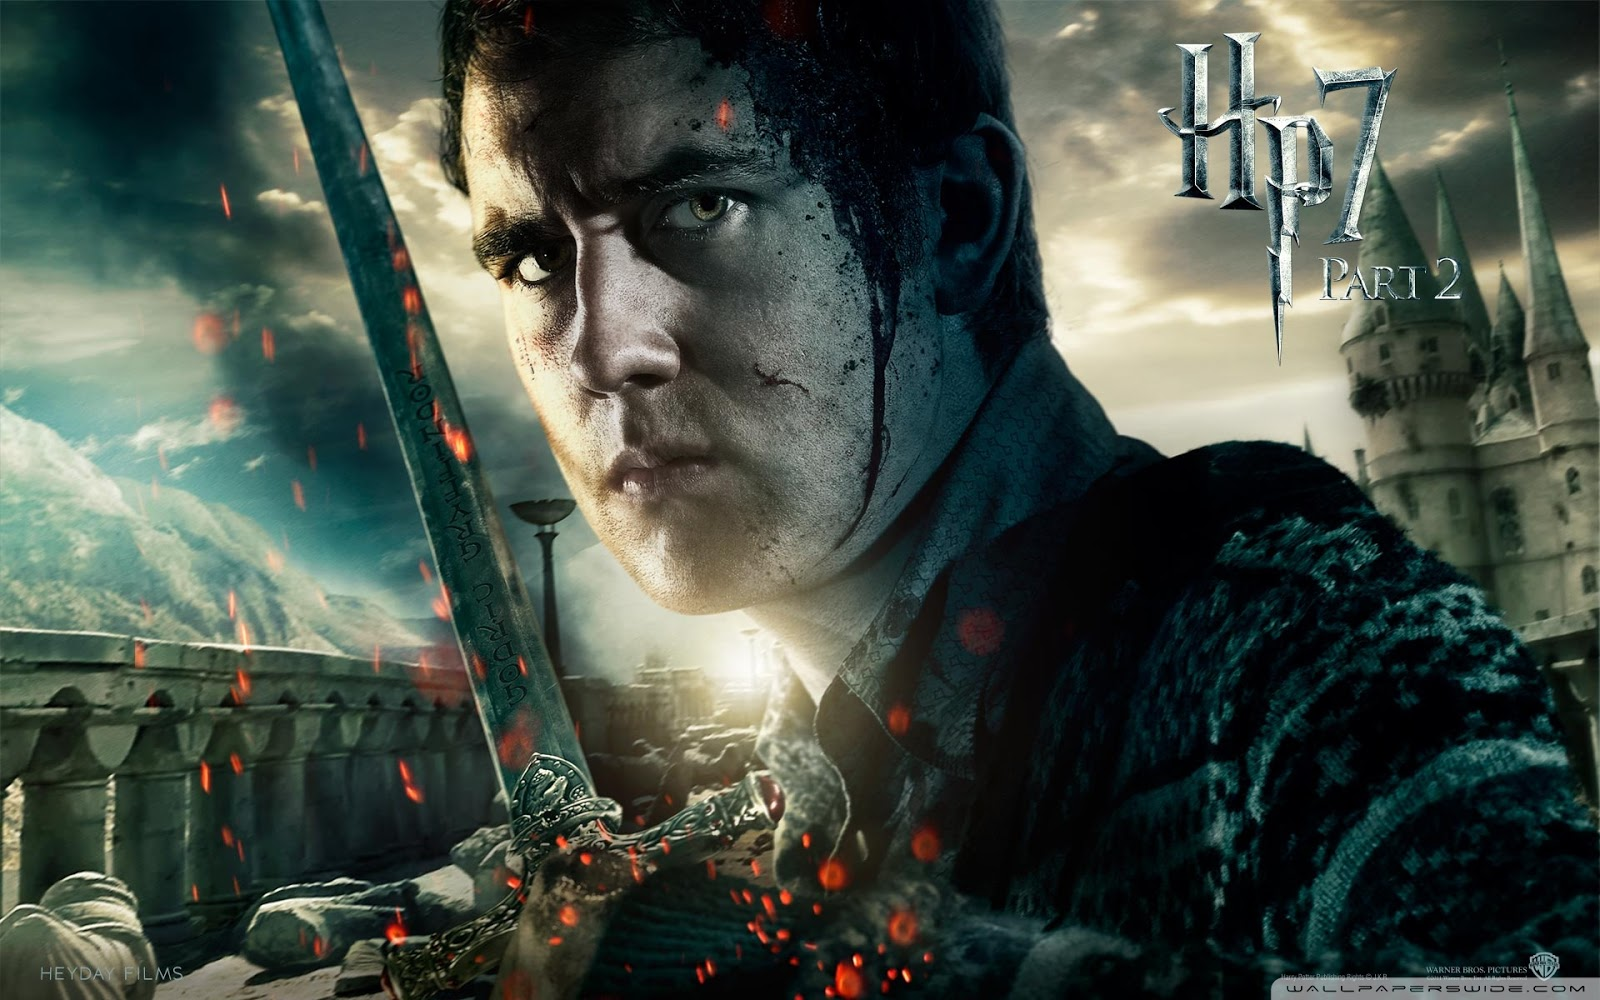 Harry Potter and the Deathly Hallows Part 2 Neville Wallpaper